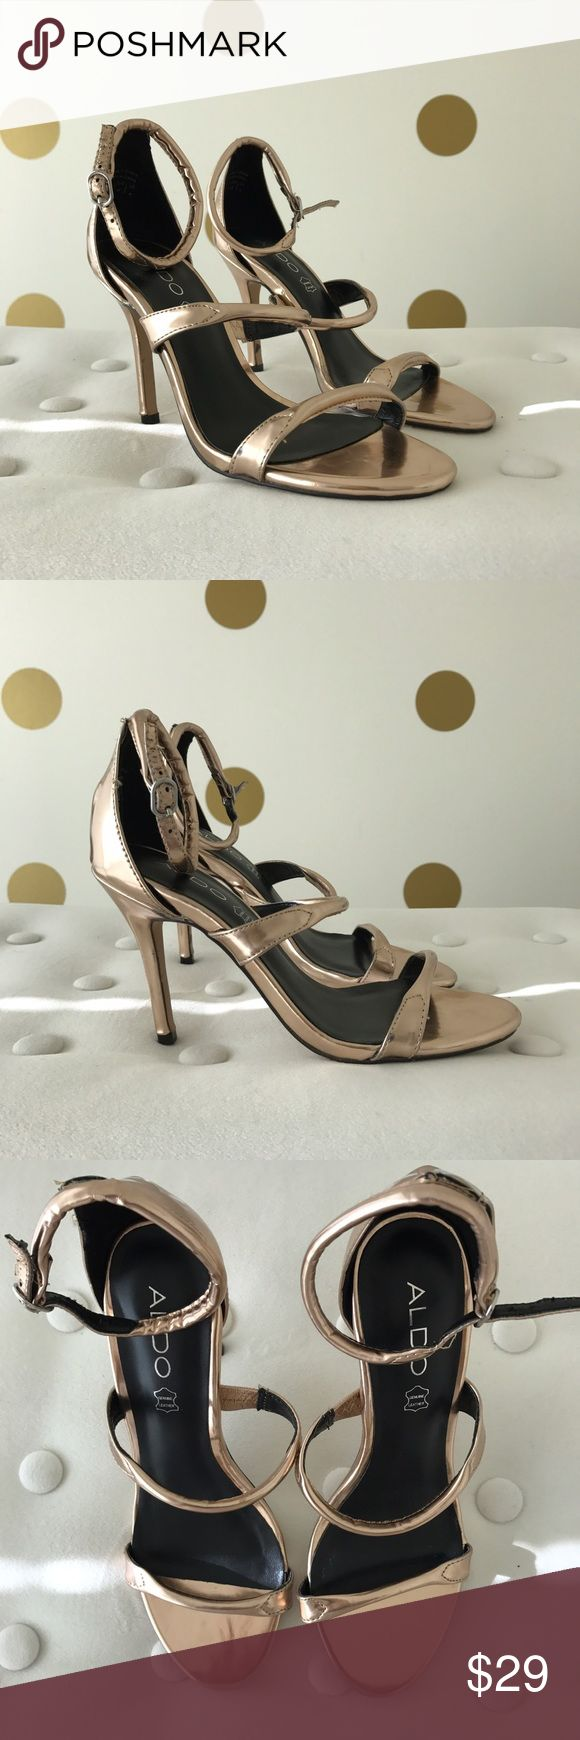 ALDO Metallic Rose Gold Strappy Sandals Beautiful metallic rose gold sandals! Aldo Shoes Heels